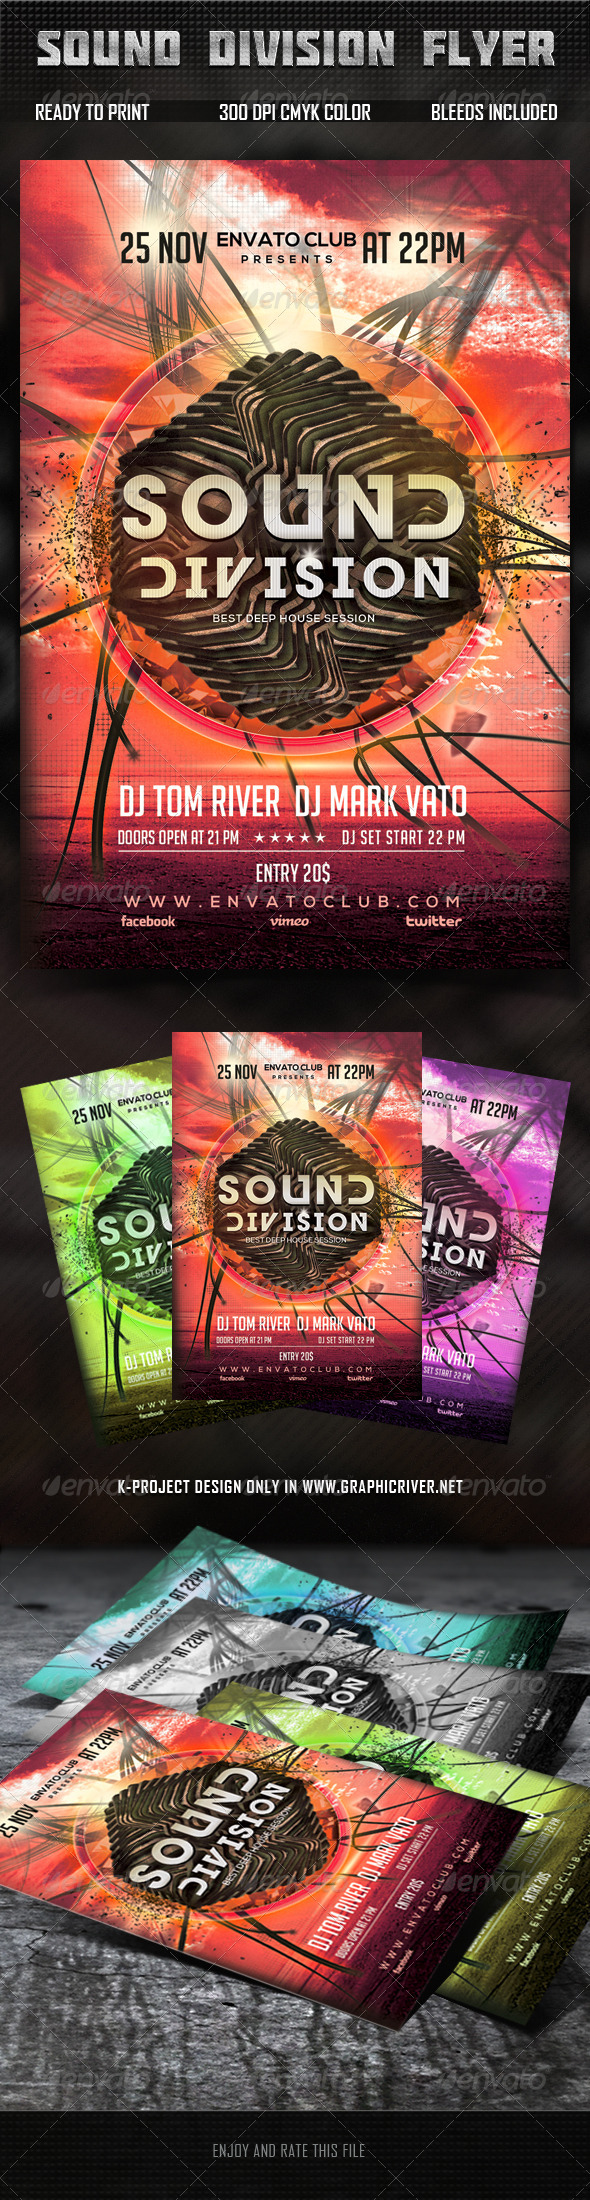 Sound Division Flyer - Clubs & Parties Events